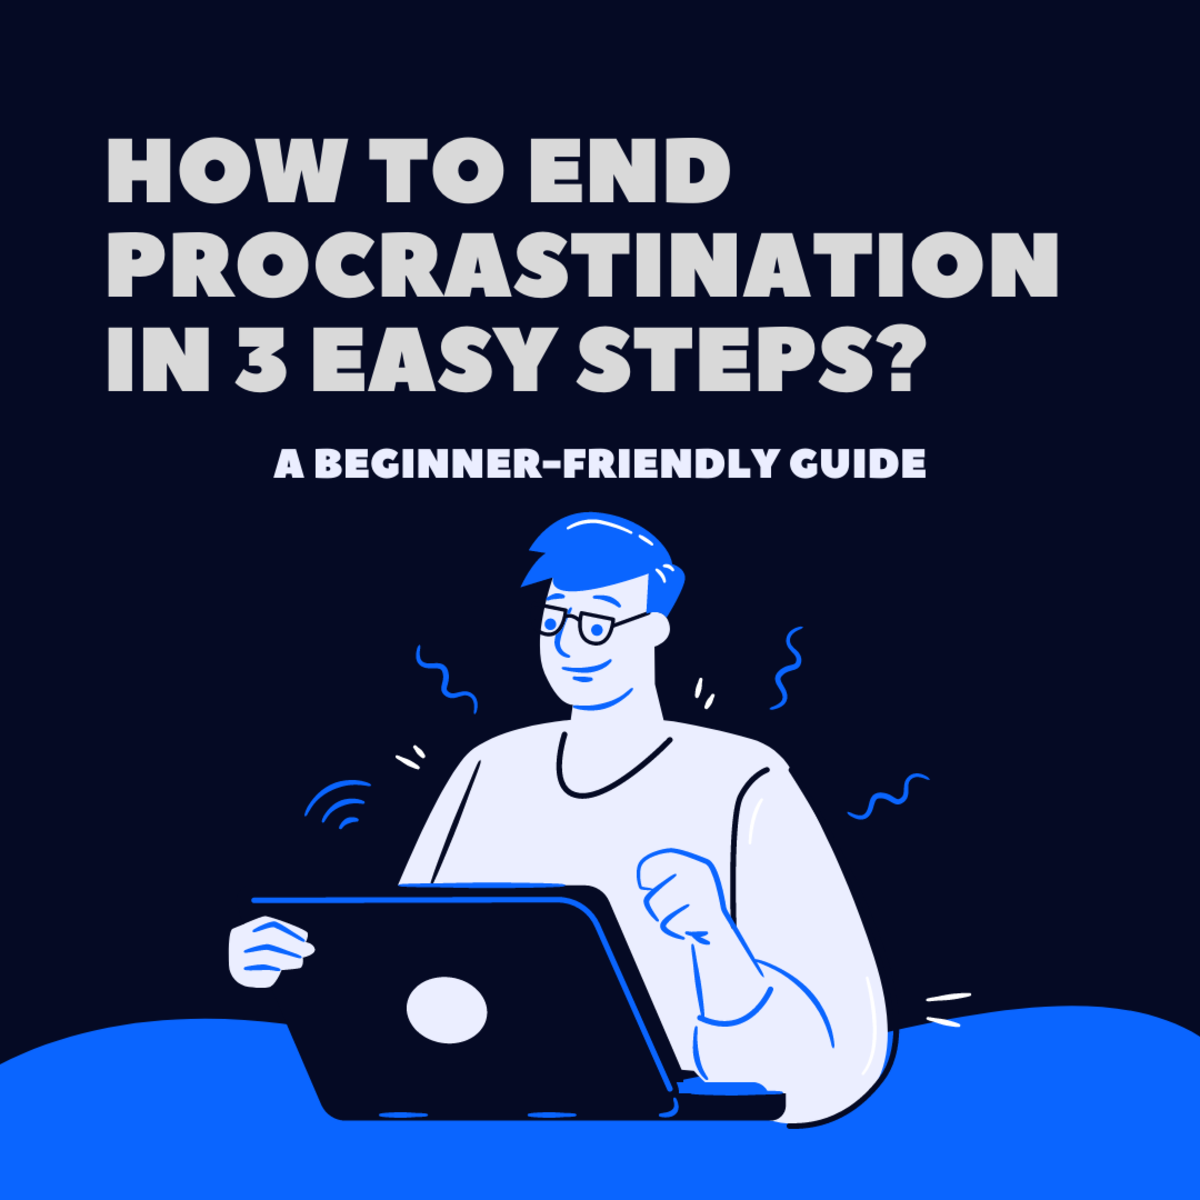 A Beginner-Friendly Guide to End Procrastination